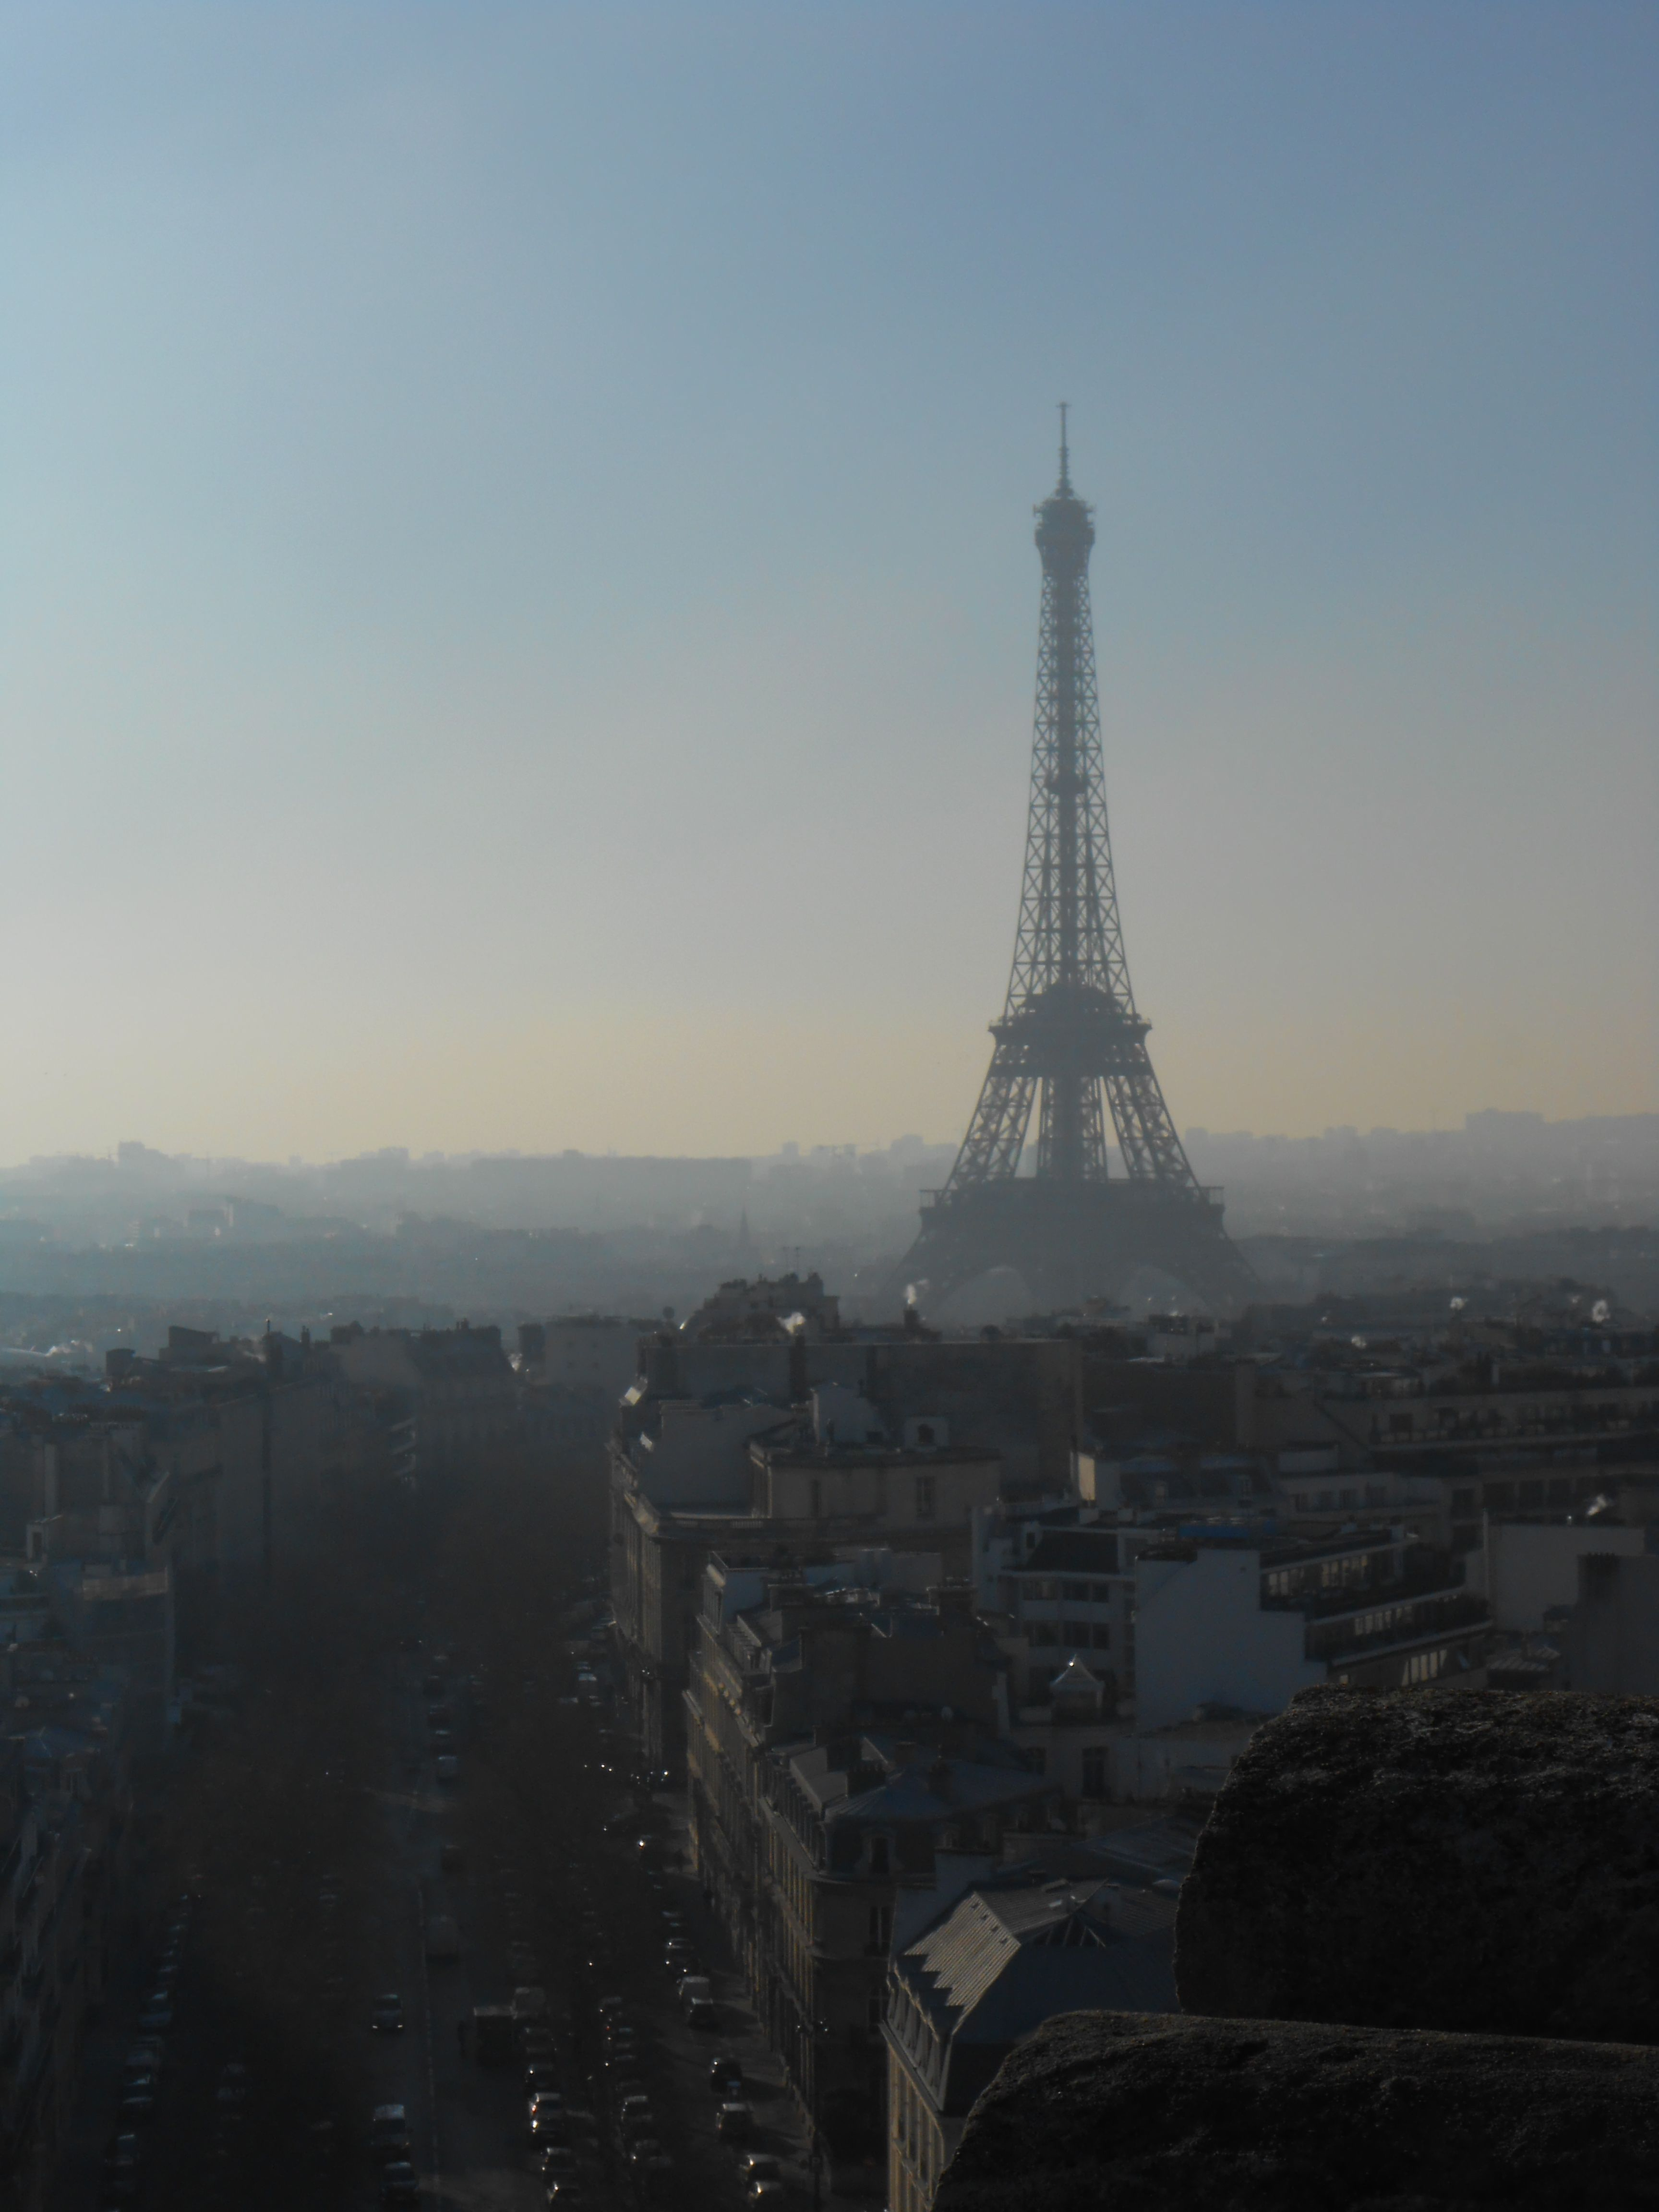 View from the top of the Arc de Triomphe